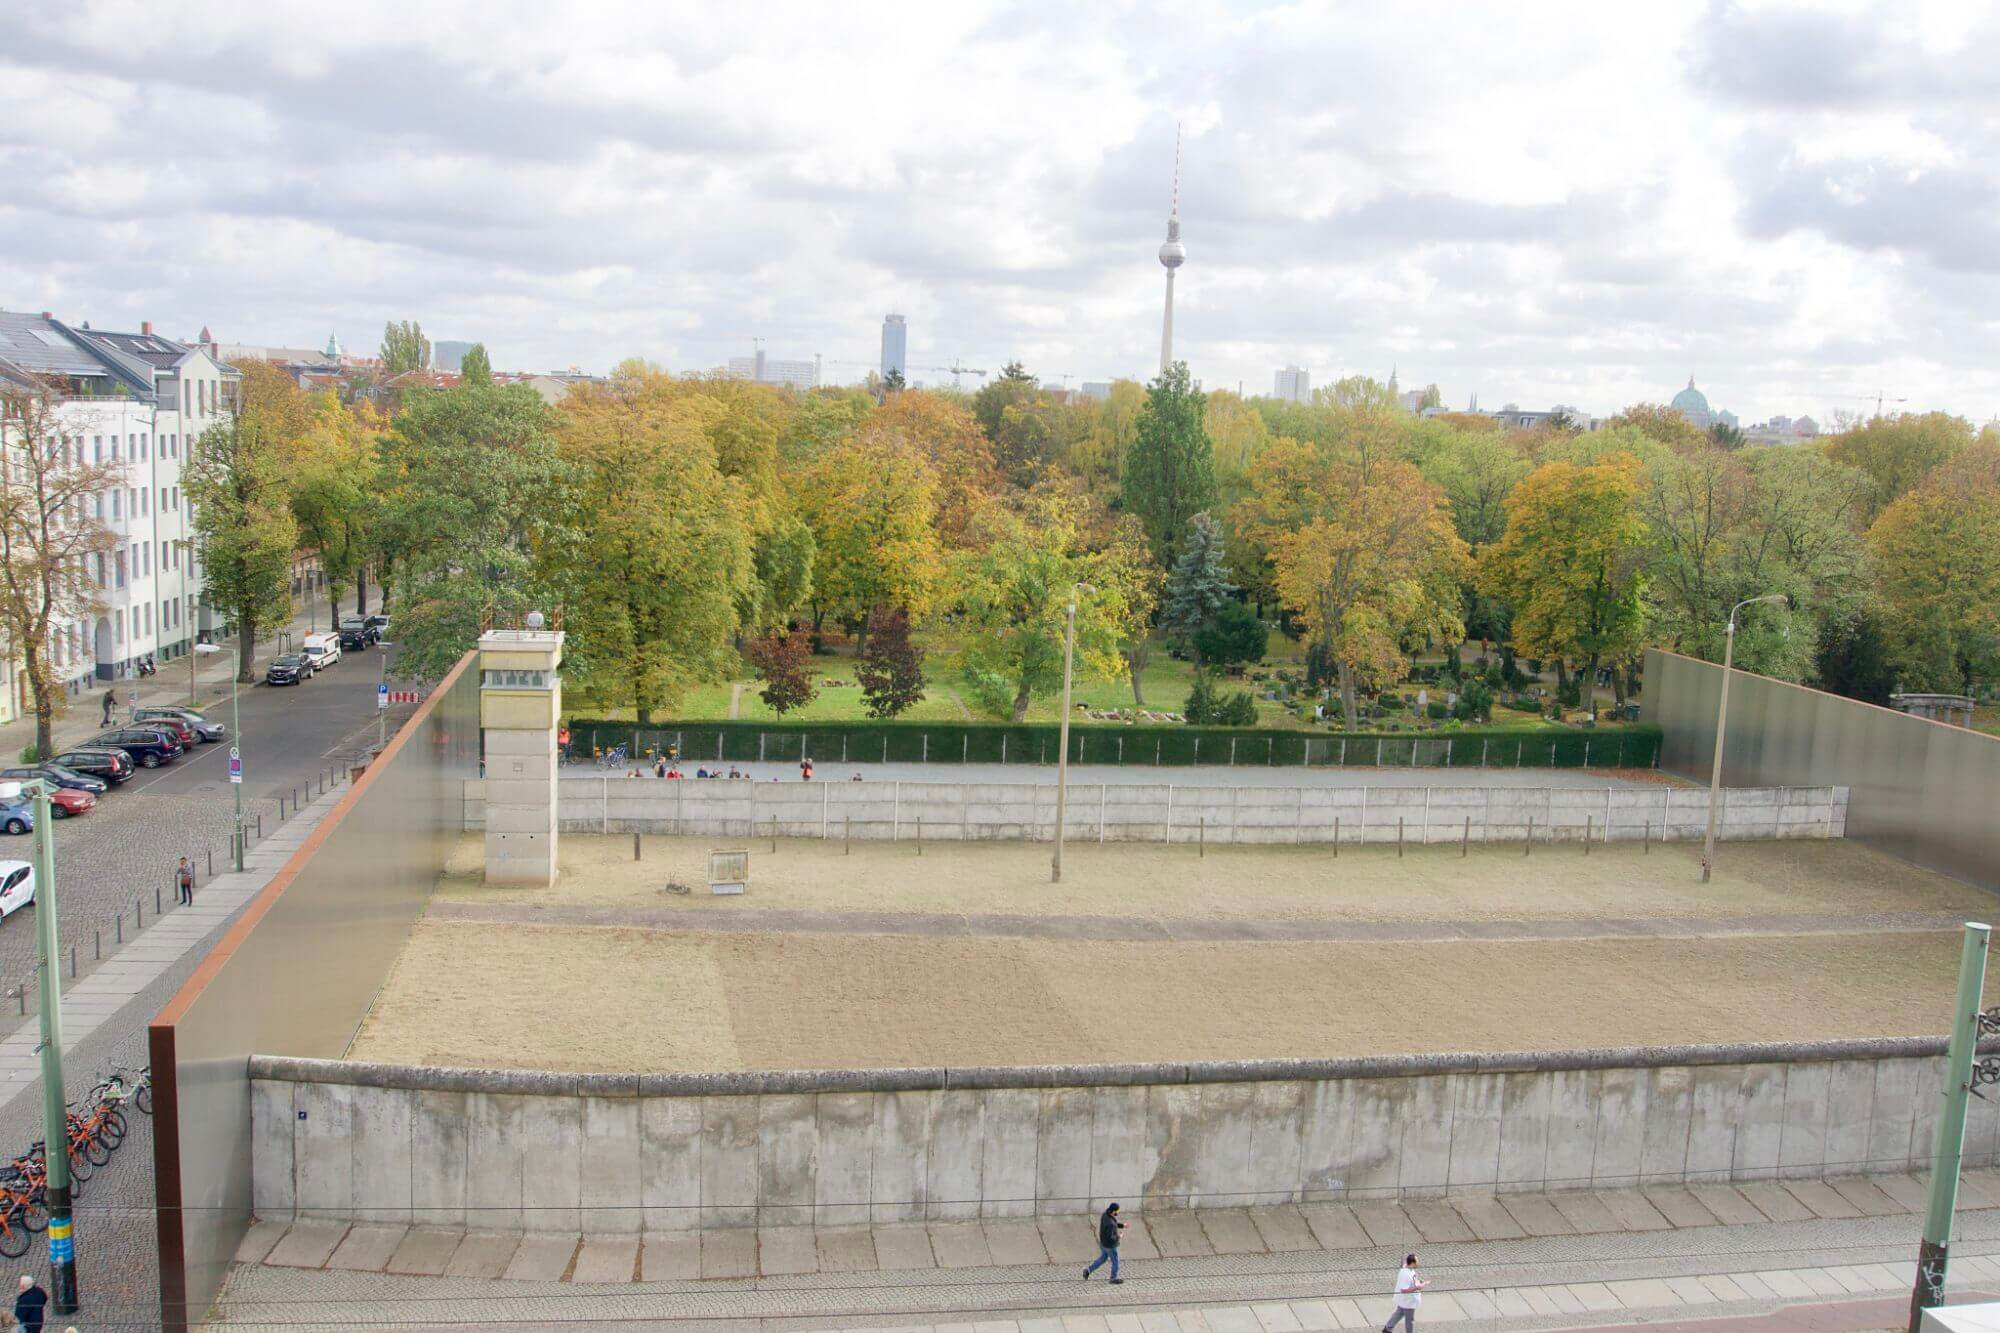 Secure Zone along the Berlin Wall